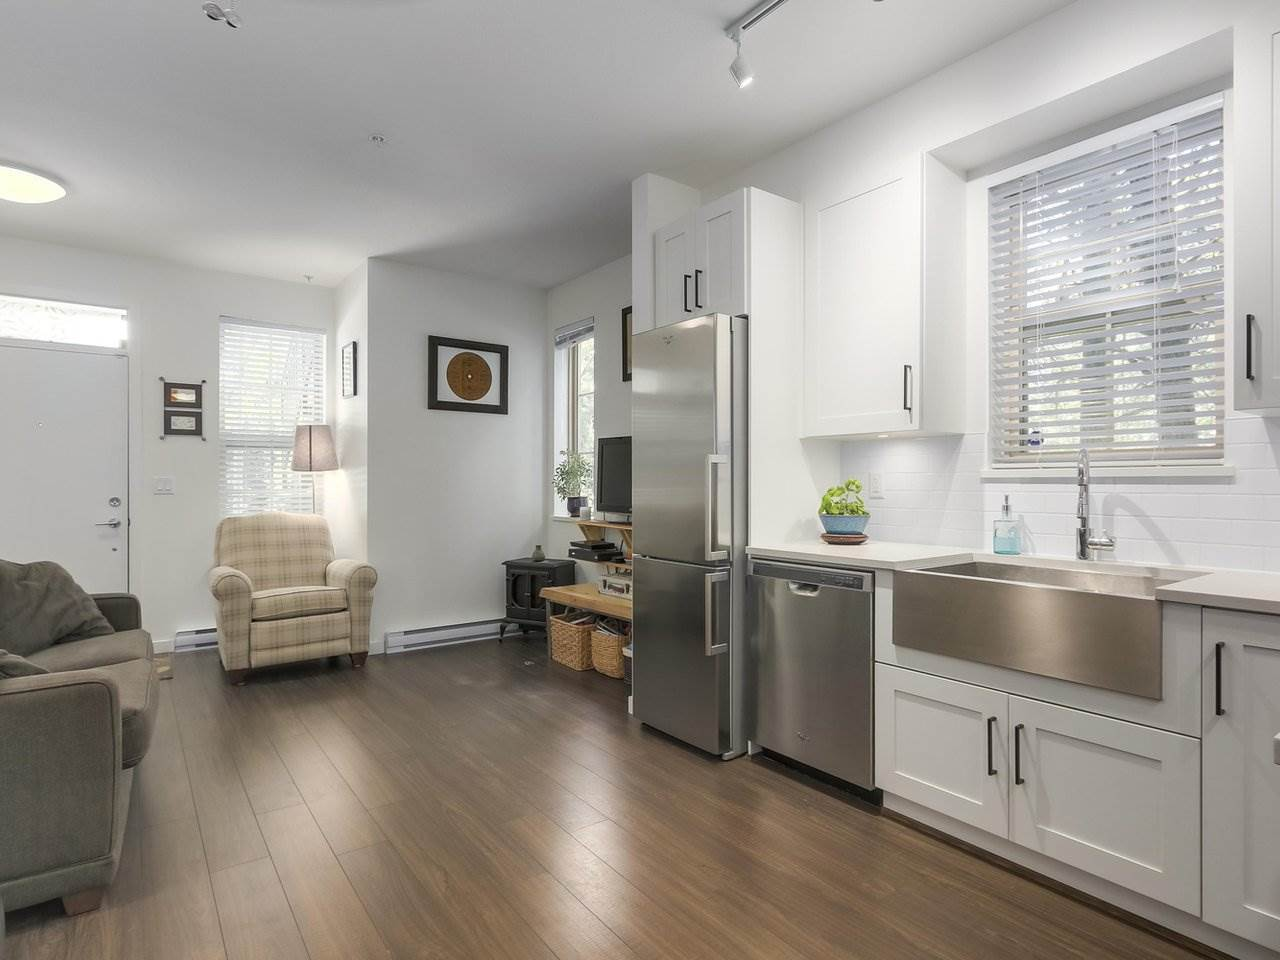 This beautiful, end unit townhome in Maplewood Place, could be yours. Centrally located with shopping, transit, parks, and quick access to HWY 1. Built by Anthem Properties, this 1 bedroom/1 bathroom unit has an efficient layout, 2 patios, in-suite laundry, an apron sink, and stainless steel appliances. As an end unit, you'll enjoy more natural sunlight than your neighbours with windows on three sides. If you love North Vancouver and all it has to offer, you'll love this townhome.